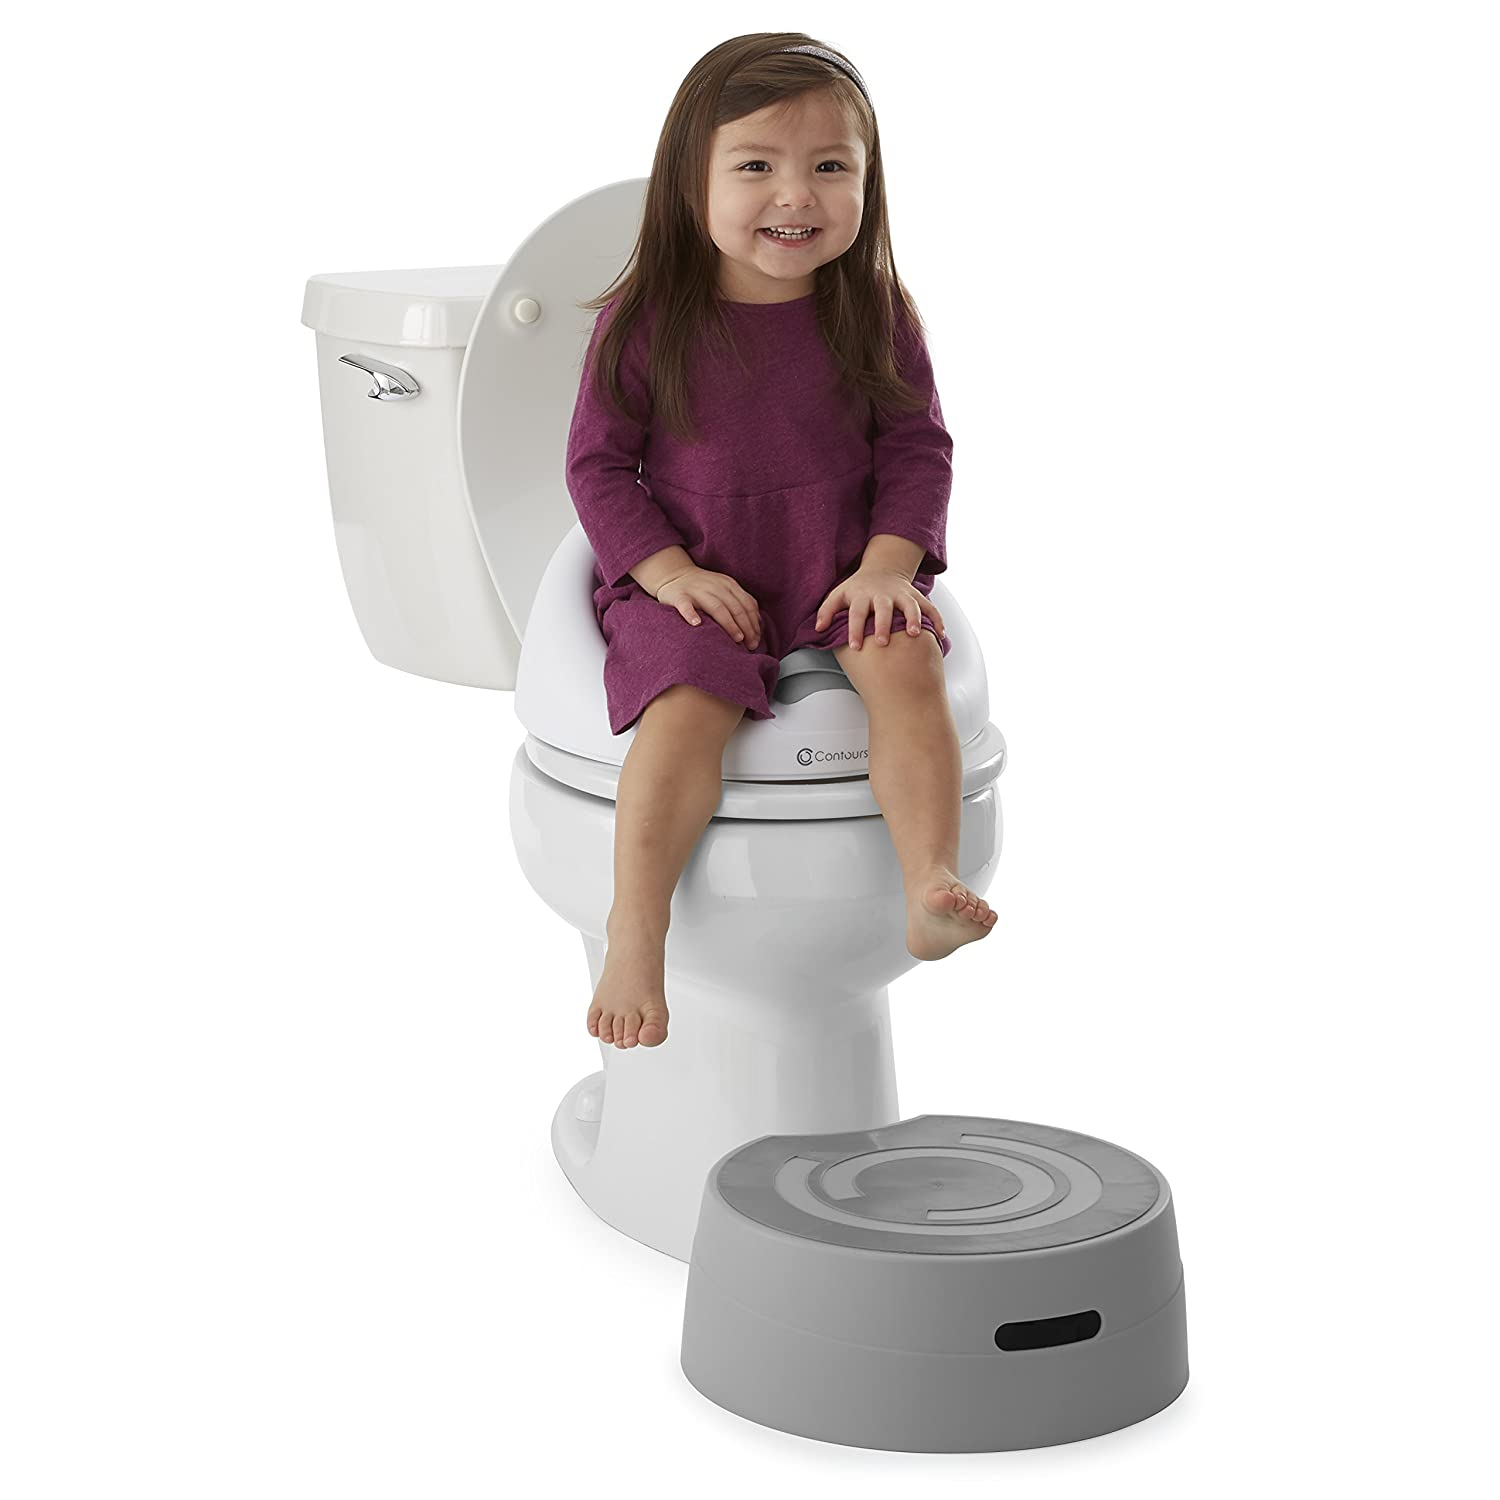 Grey Step Stool All in One Toilet Trainer Potty Chair Contours Bravo 3-in-1 Potty System